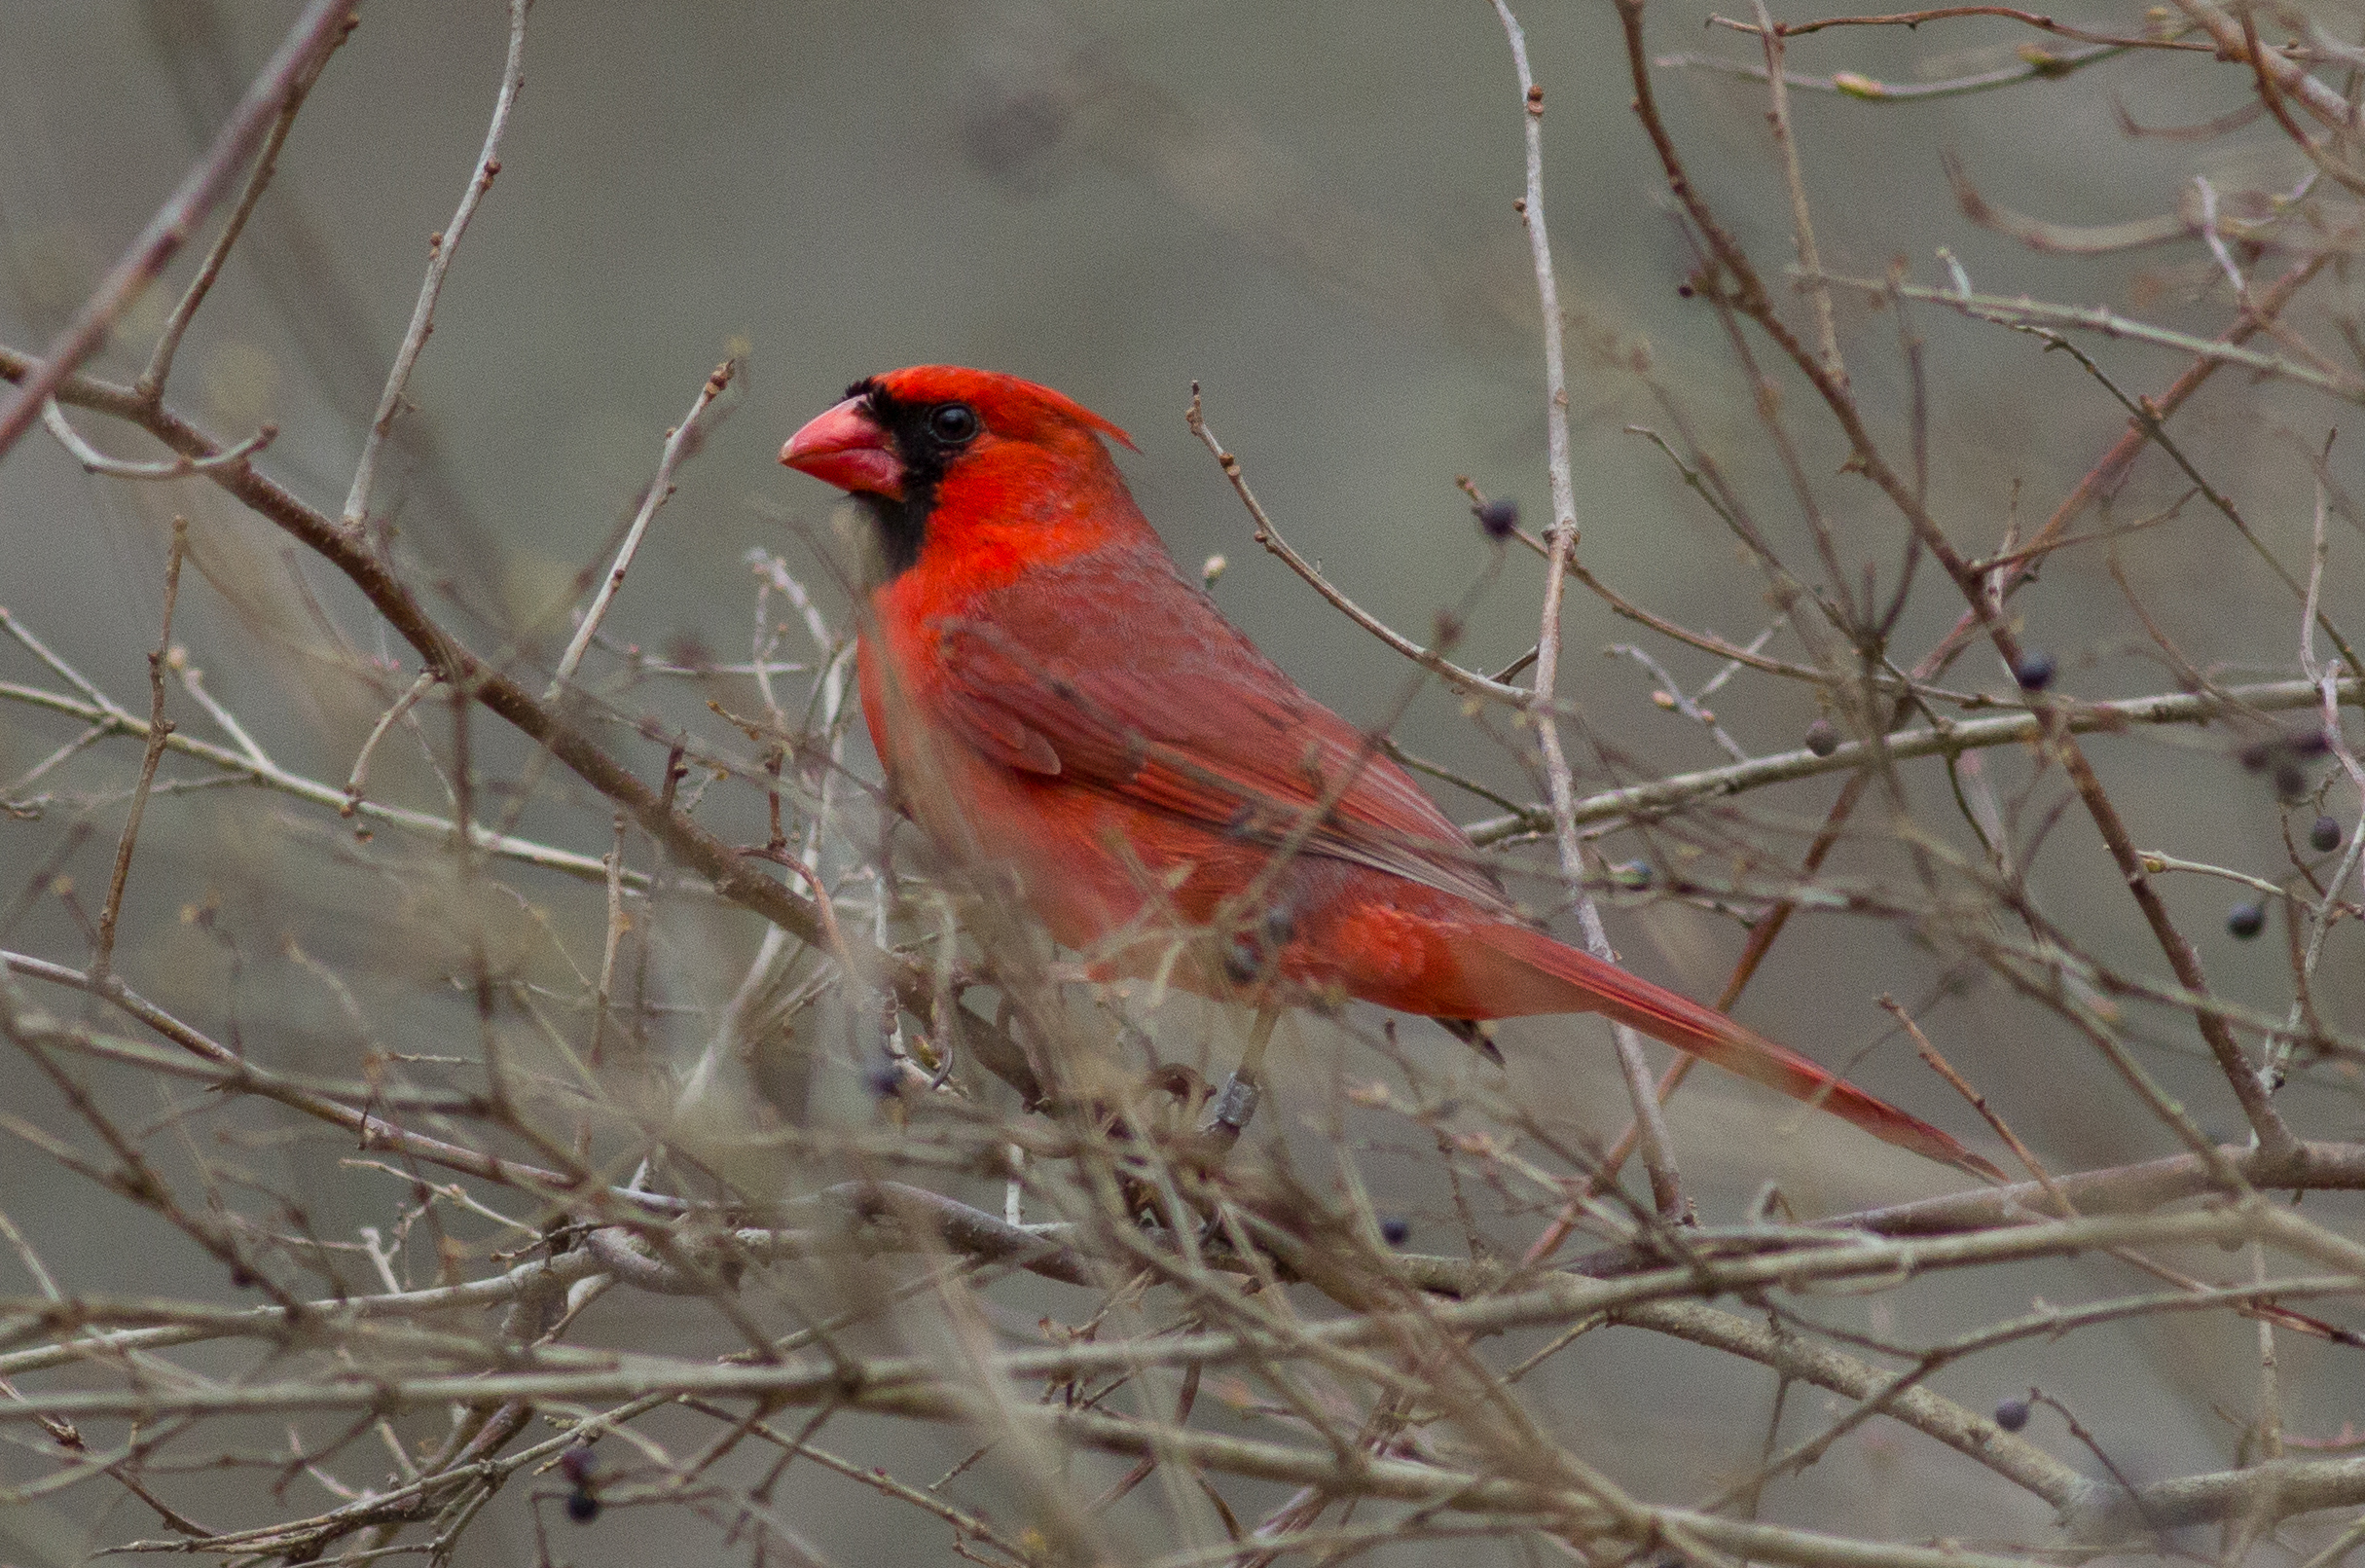 A banded male North American cardinal ( Cardinalis cardinalis ) in Rhode Island, April 2018,  Photo credit: Steve Brenner